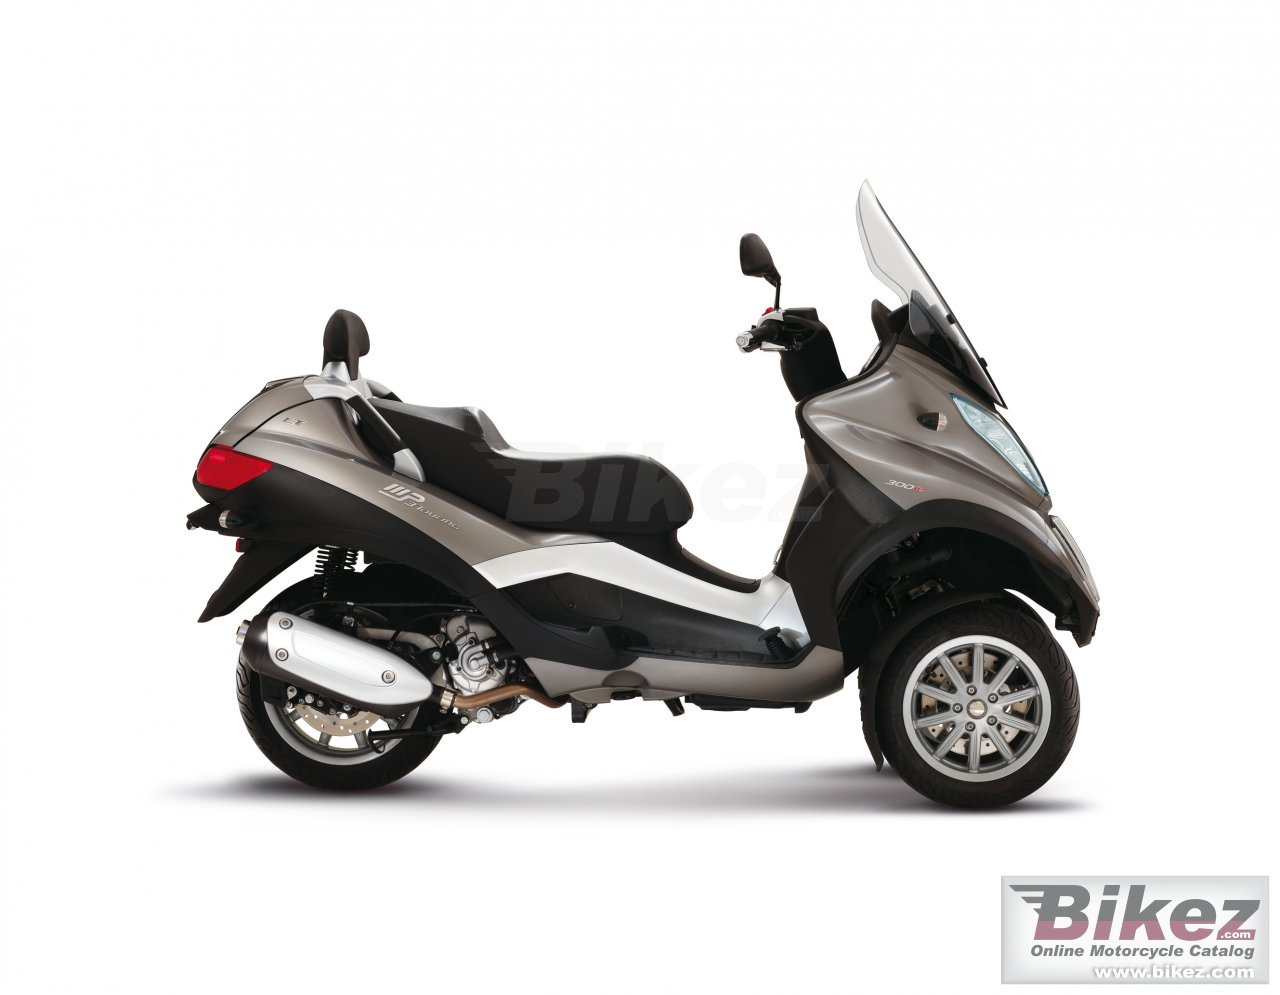 Big Piaggio mp3 touring lt 300 picture and wallpaper from Bikez.com